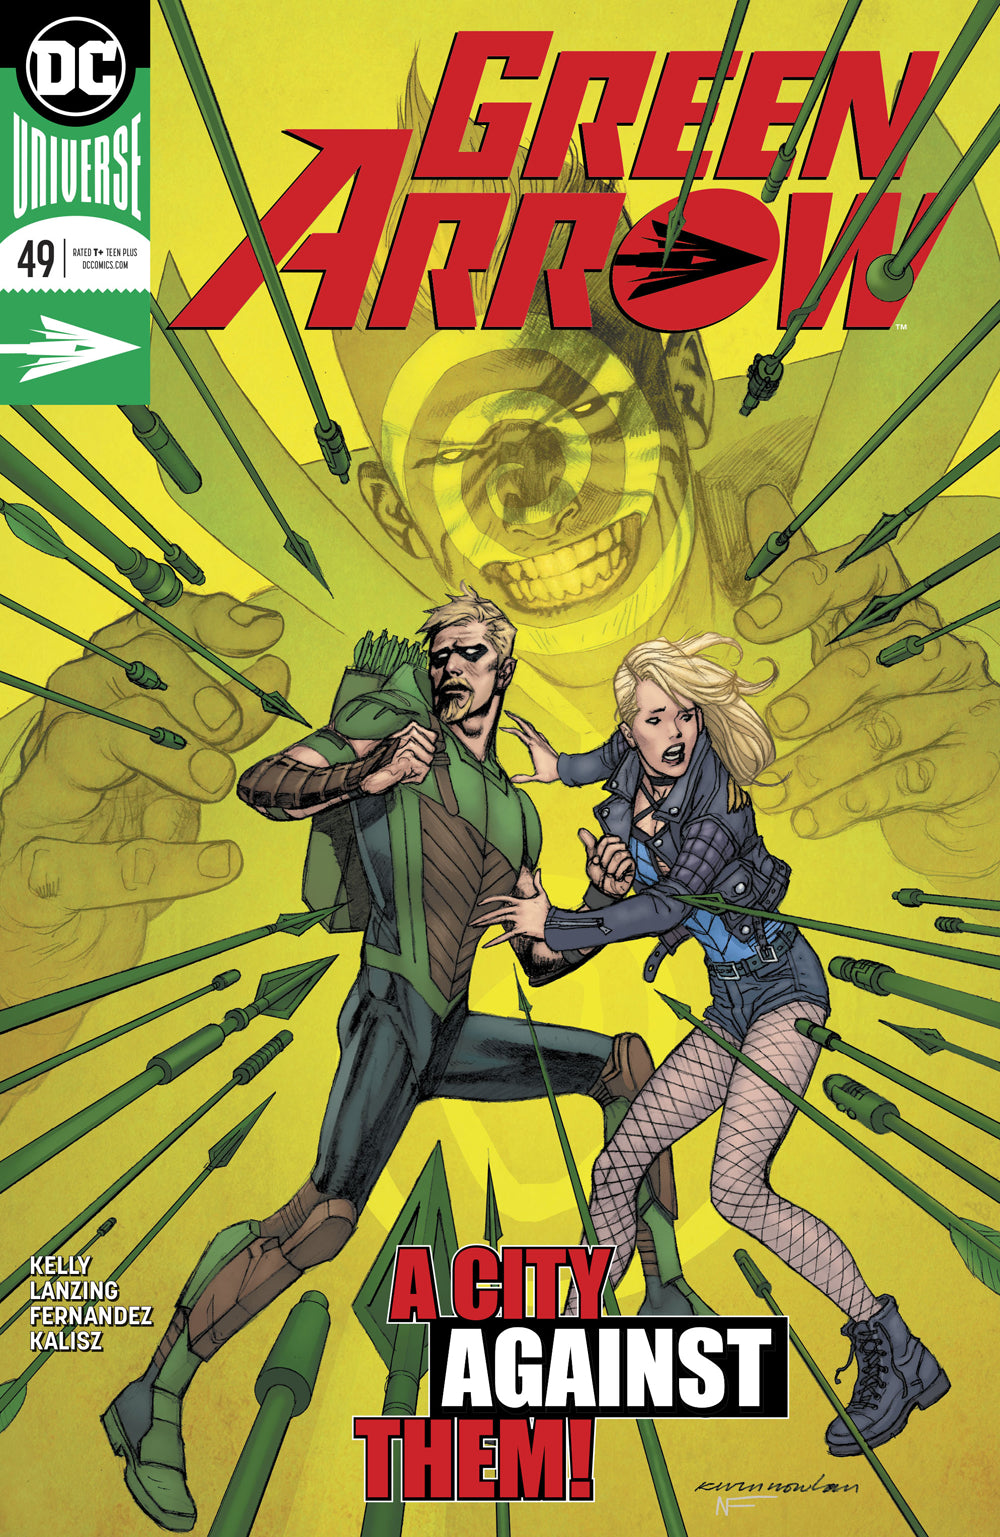 GREEN ARROW #49